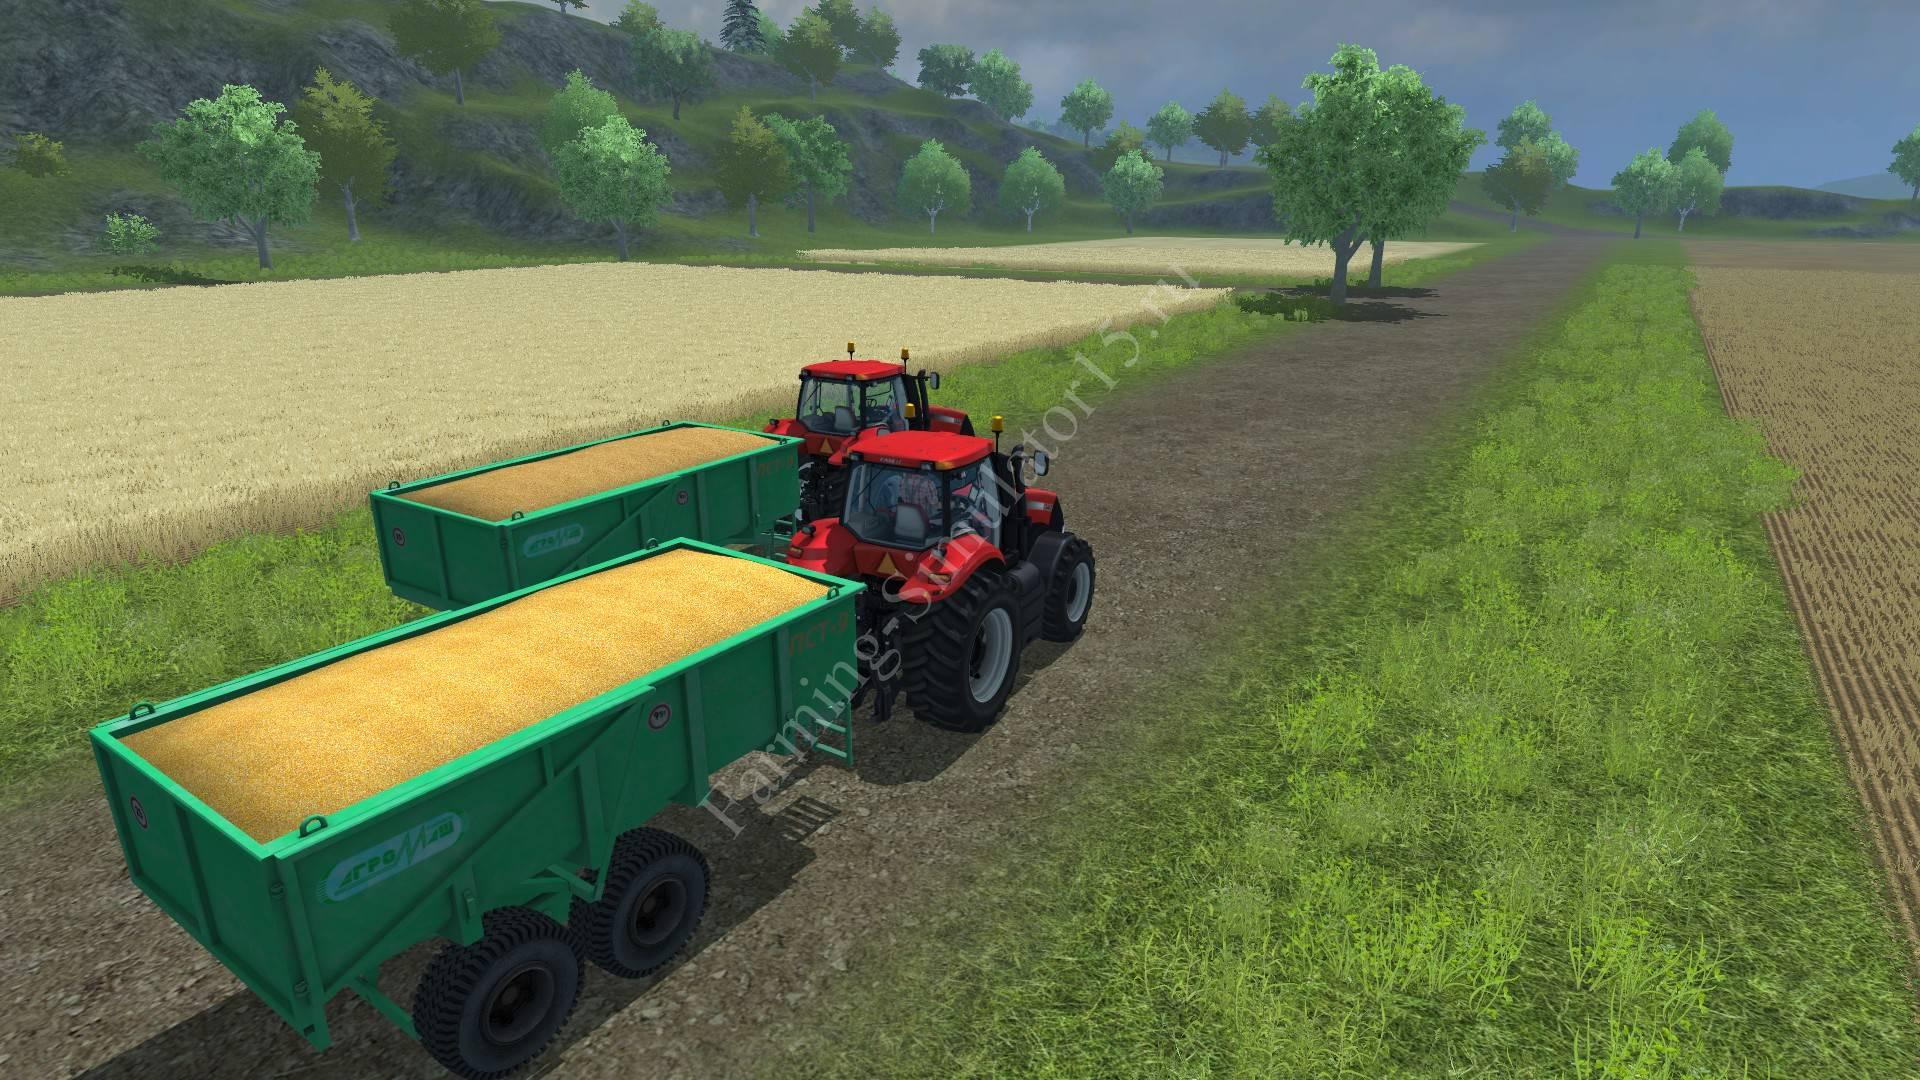 Мод прицепа ПСТ PST 9 v1 Farming Simulator 2013, Farming Simulator 13